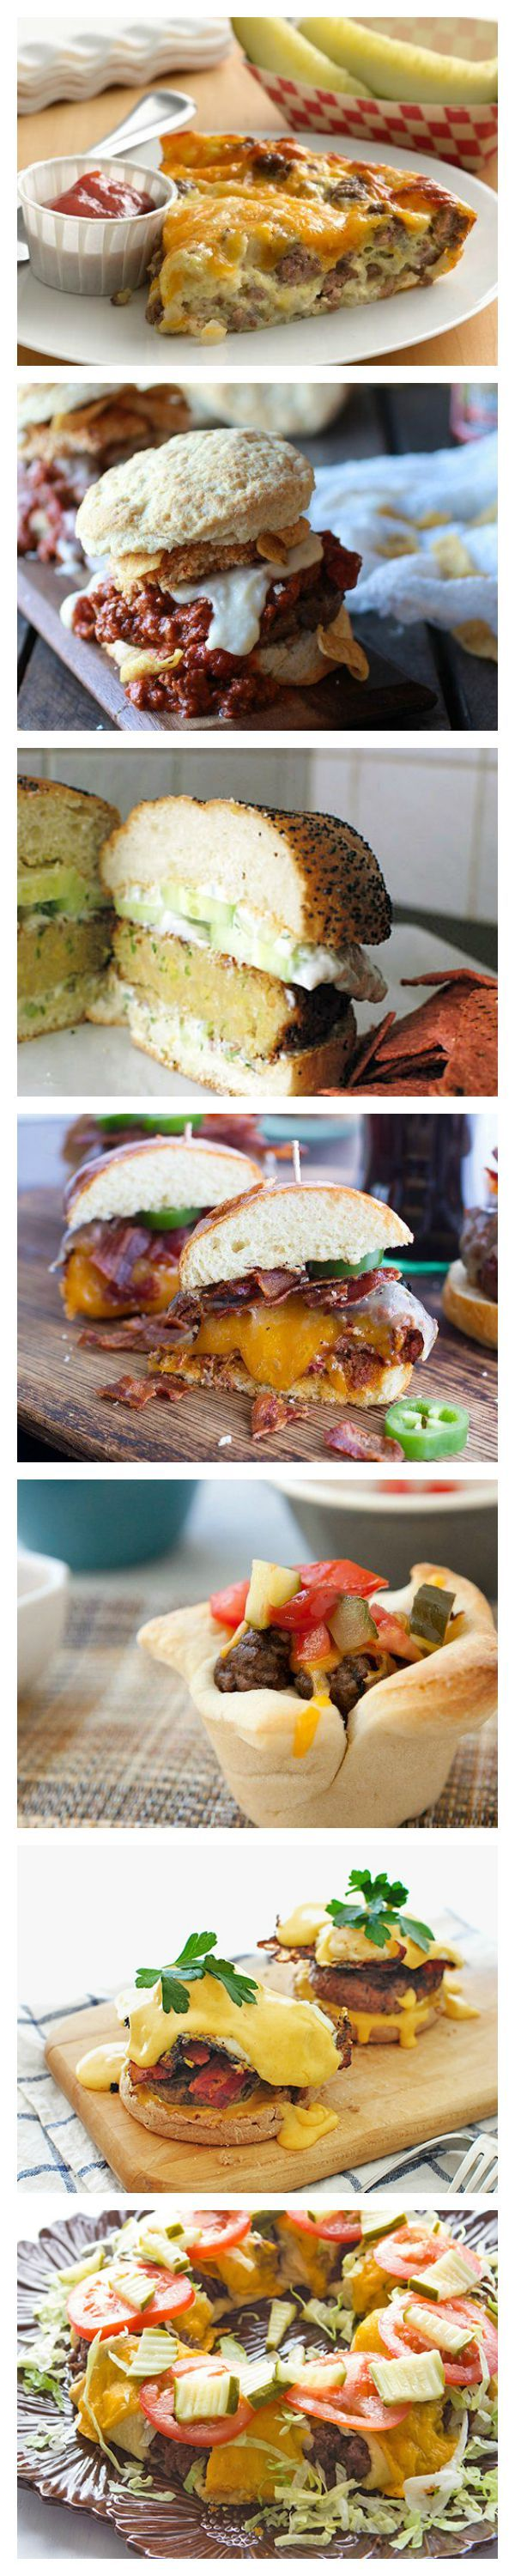 Celebrate National Cheeseburger Day in style with these 7 creative ways to change up your burger game.